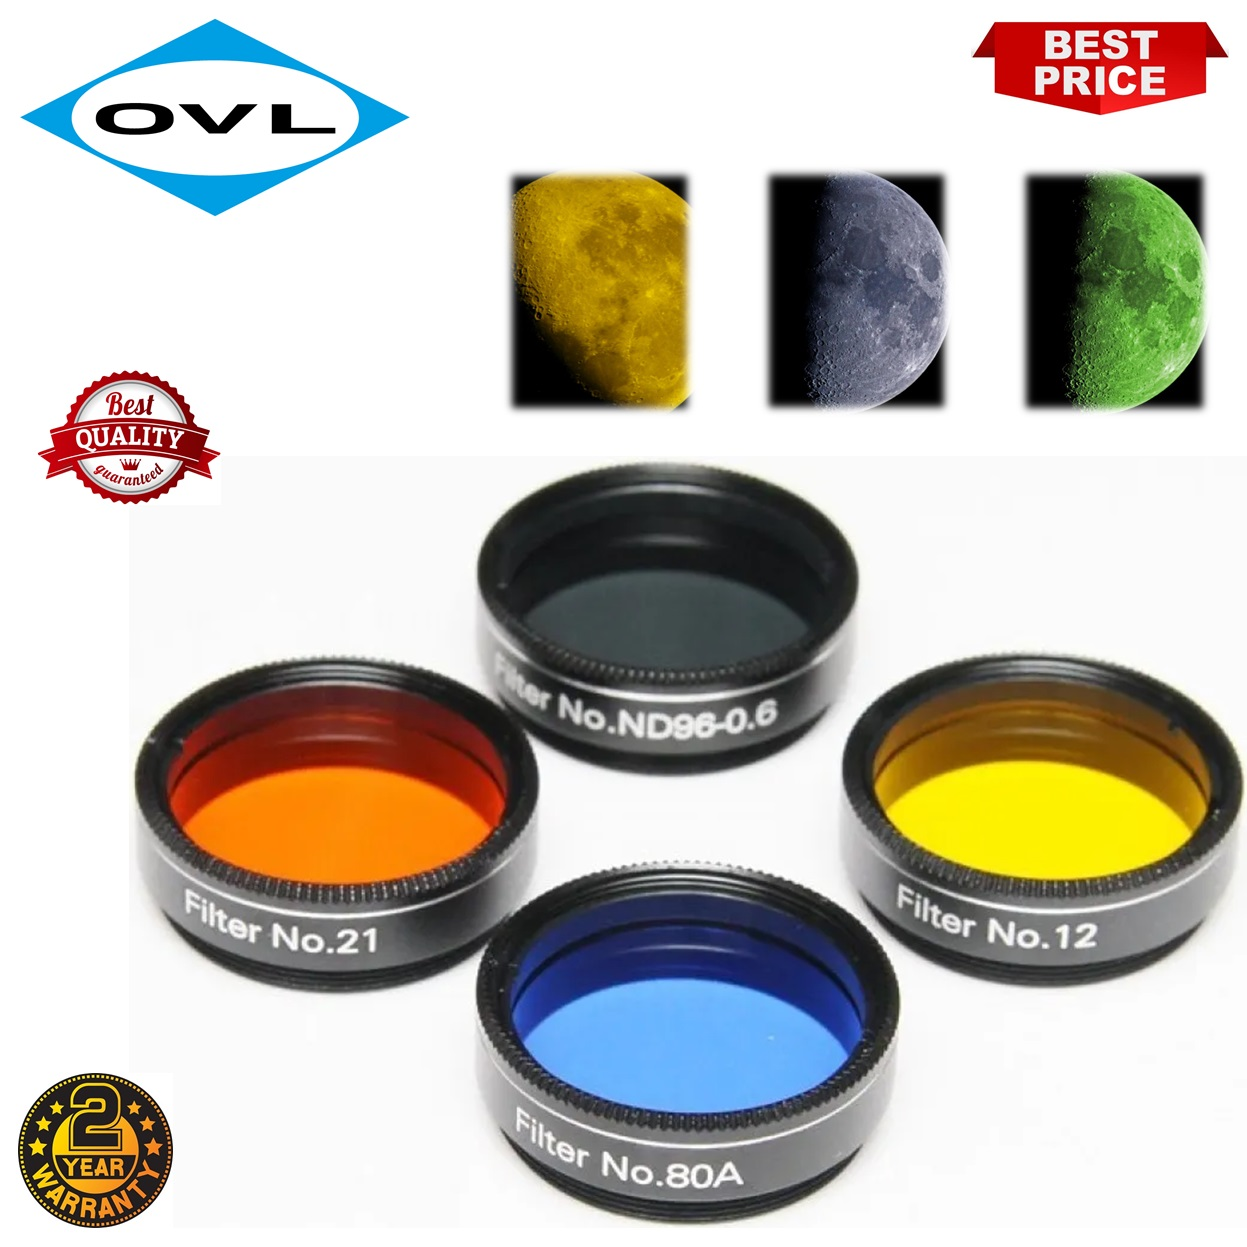 Skywatcher 1.25 Inch Lunar/Planetary Telescope Filter Set